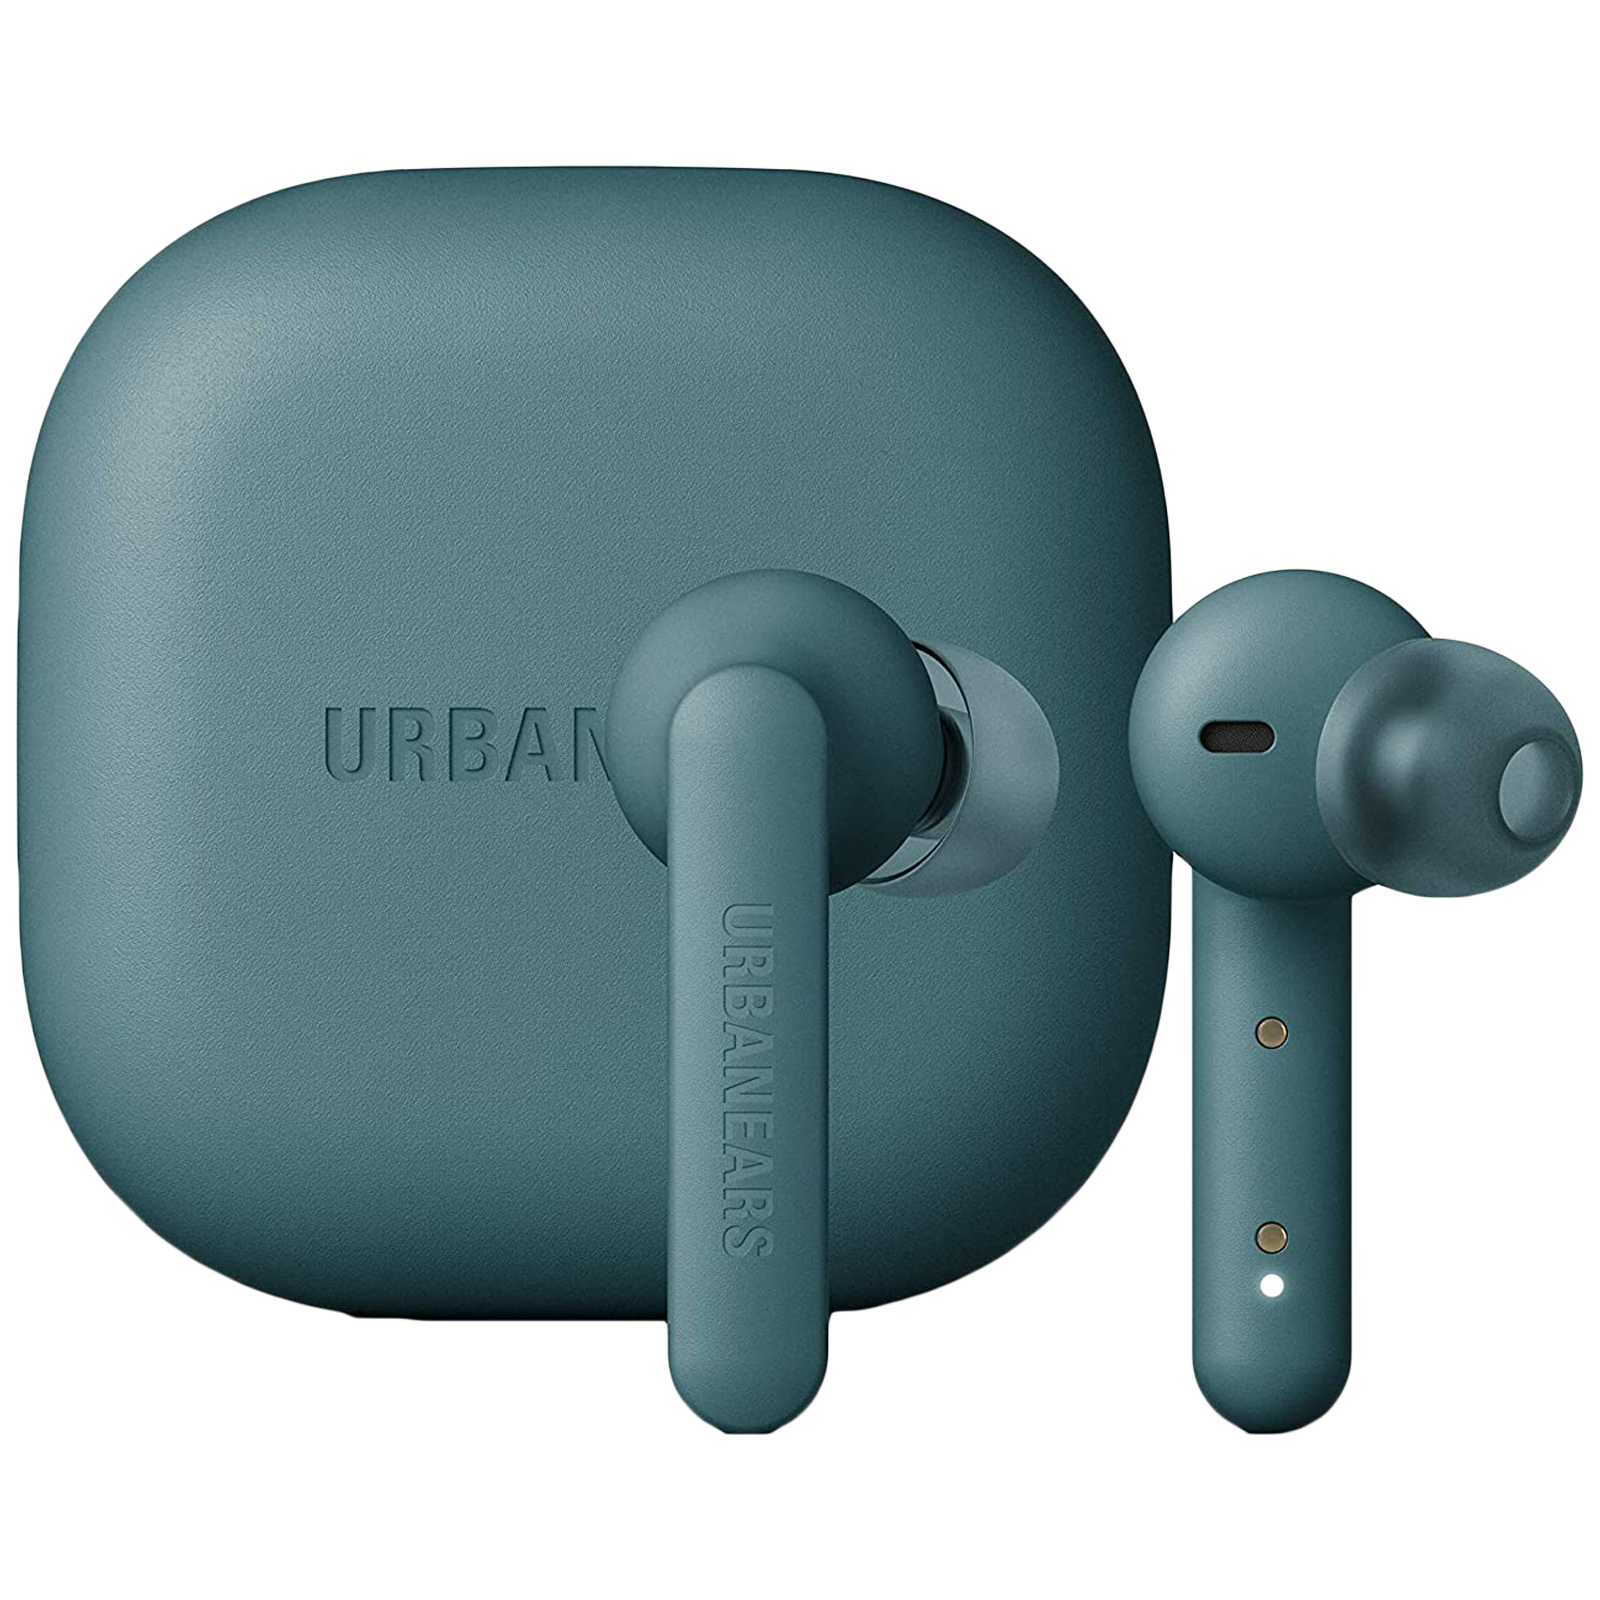 Urbanears Alby In-Ear Truly Wireless Earbuds with Mic (Bluetooth 5.0, Voice Assistant Support, UE-ALBY-GRN, Teal Green)_1